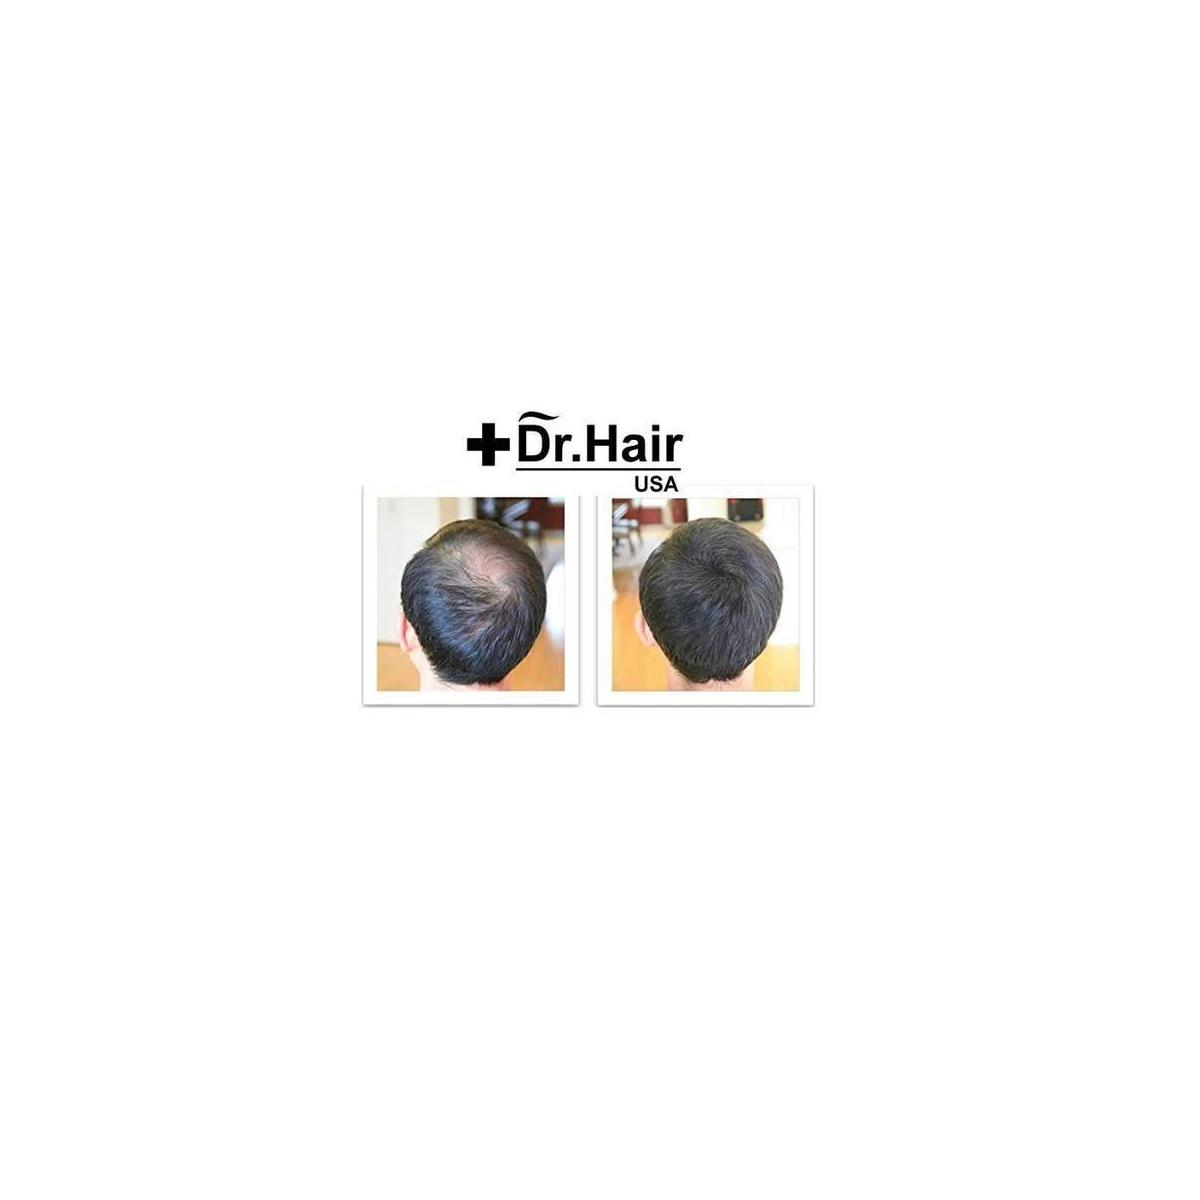 DR.HAIR USA - THE BEST HAIR FIBER. LOOK 10 YRS YOUNGER IN 1 MIN